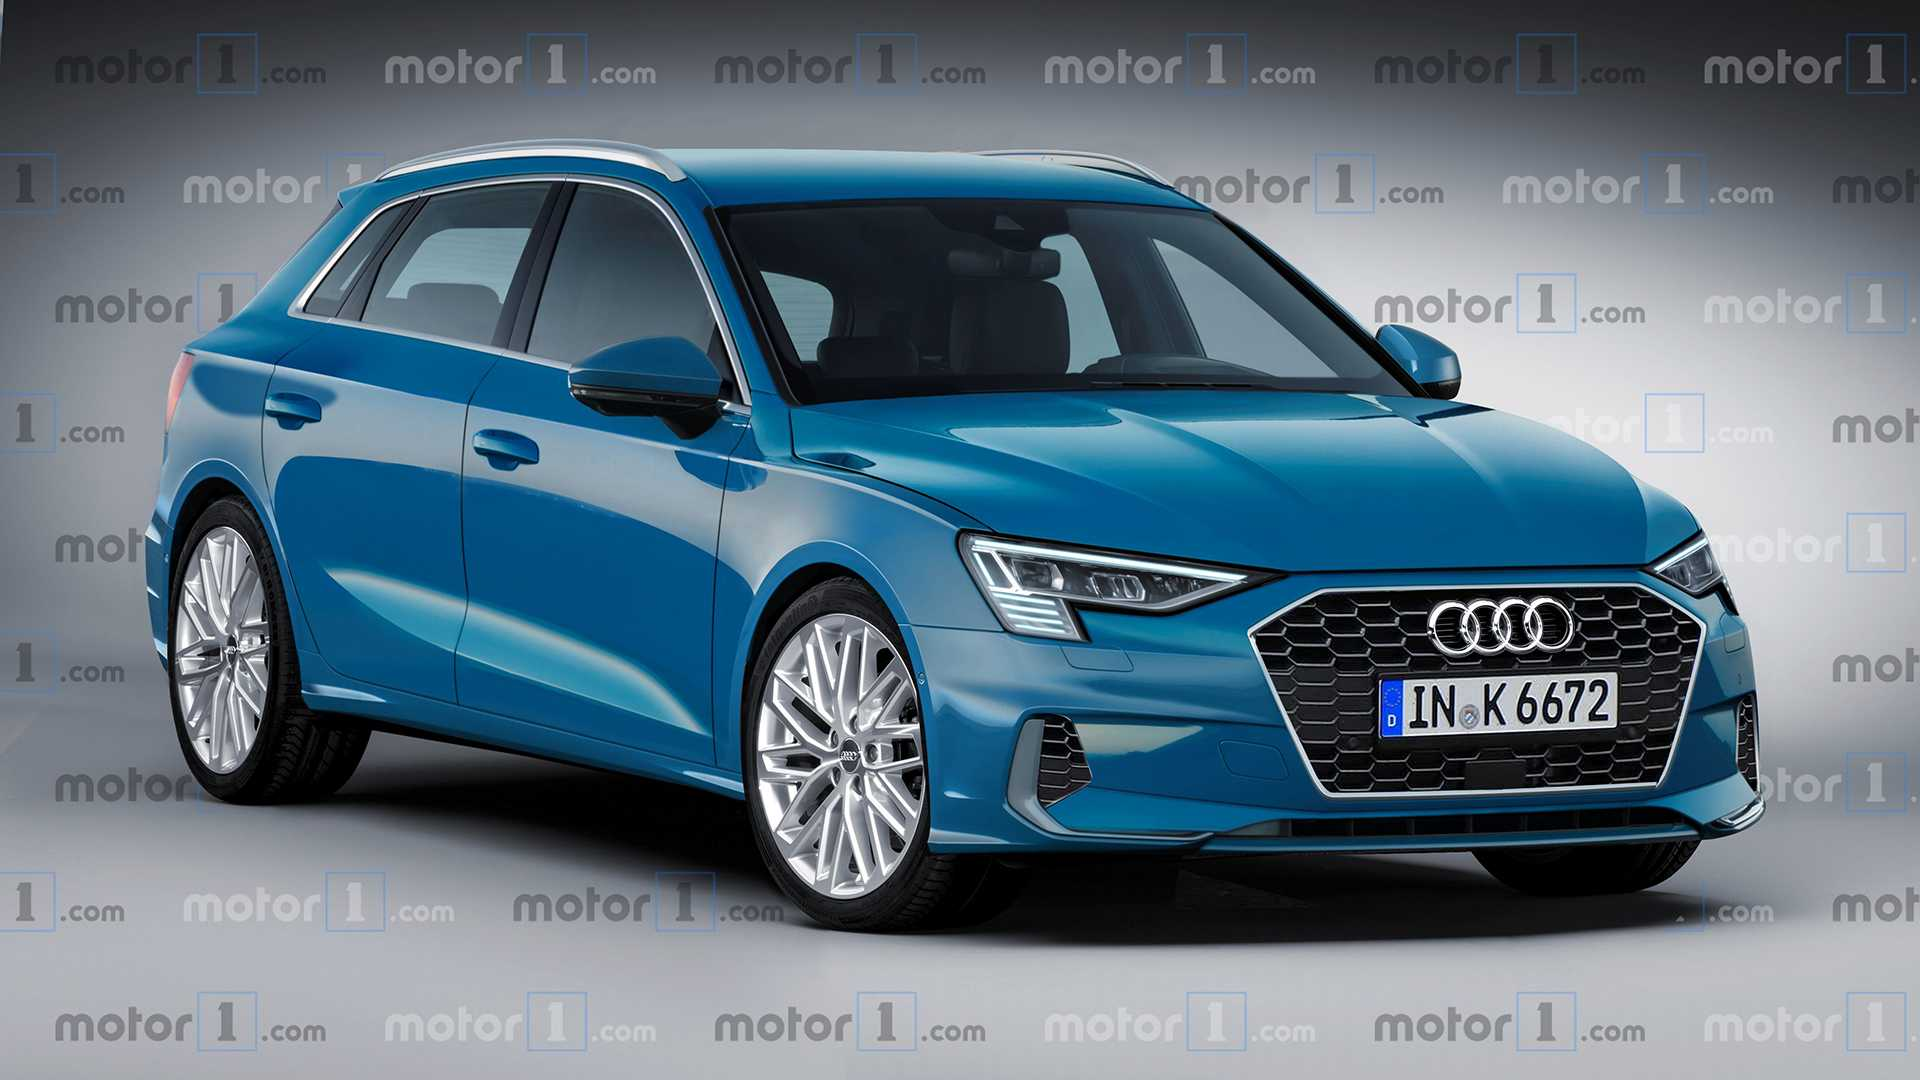 47 All New Audi A3 2020 Release Date Price